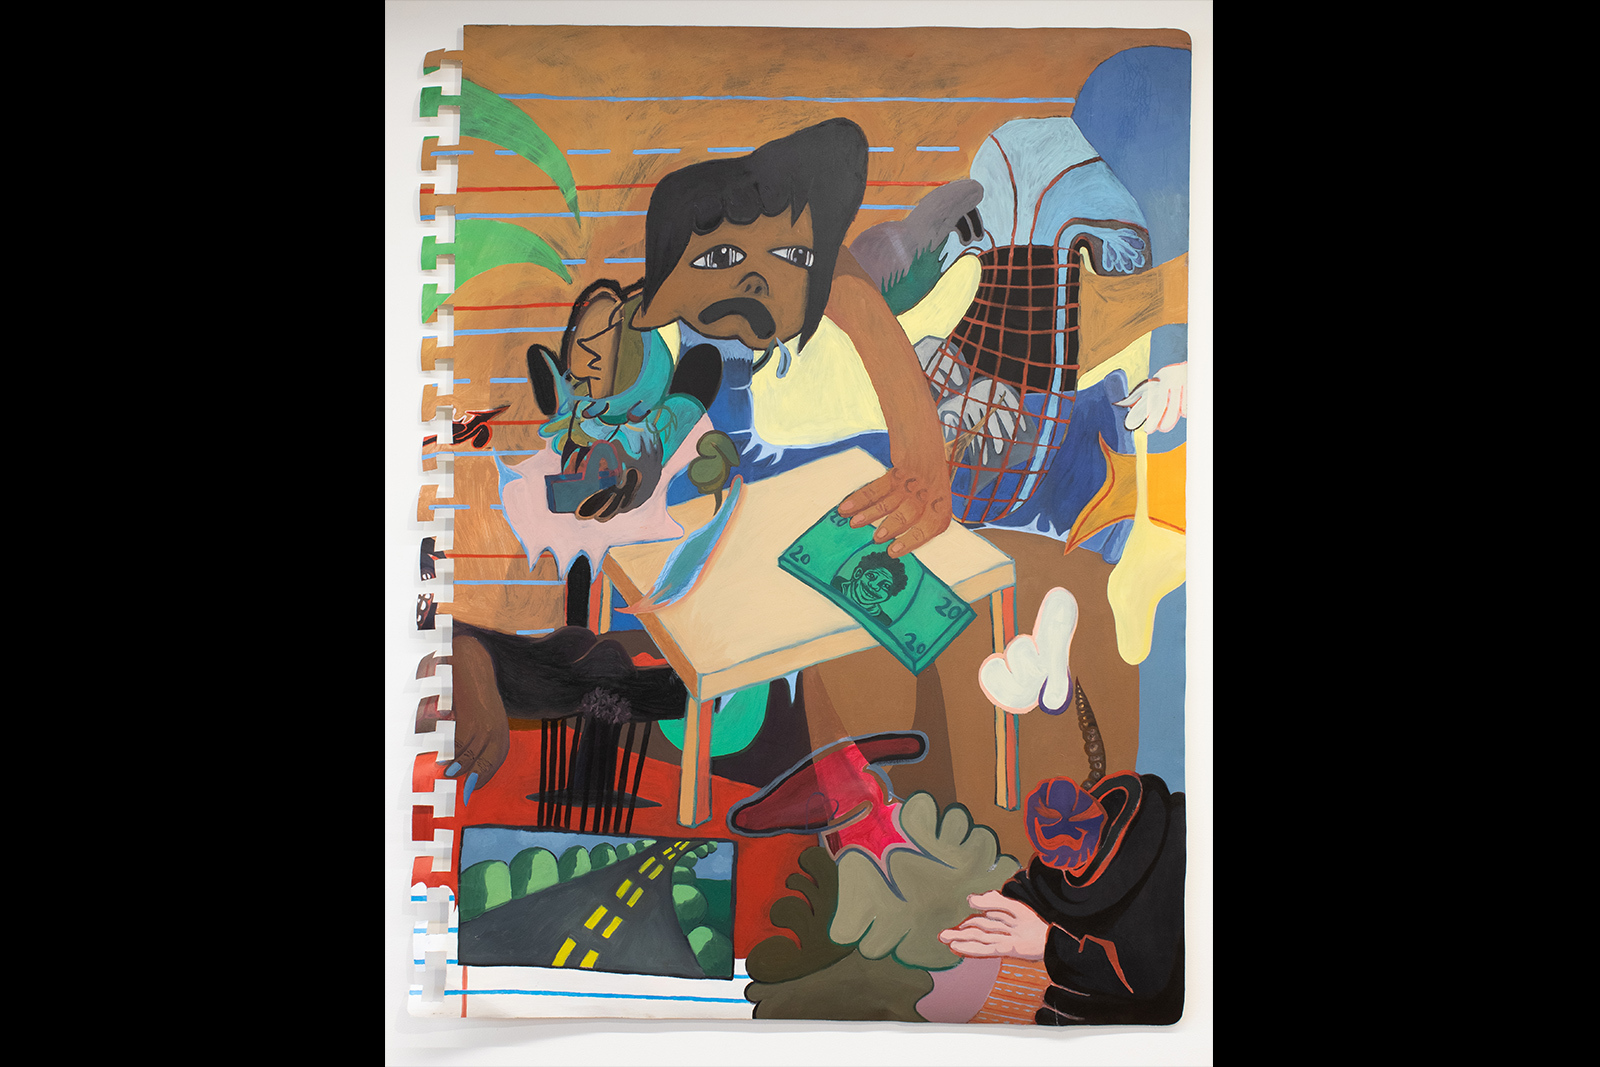 Thalia Rodgers - Abstract painting of figure holding $20 bill; headless figure sits in bottom right corner